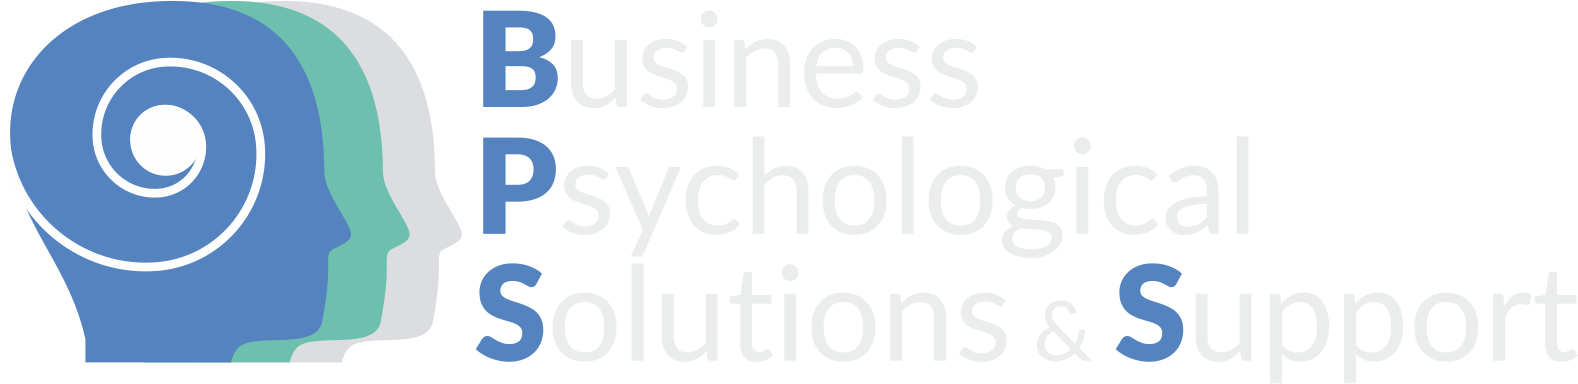 Business Psychological Solutions & Support